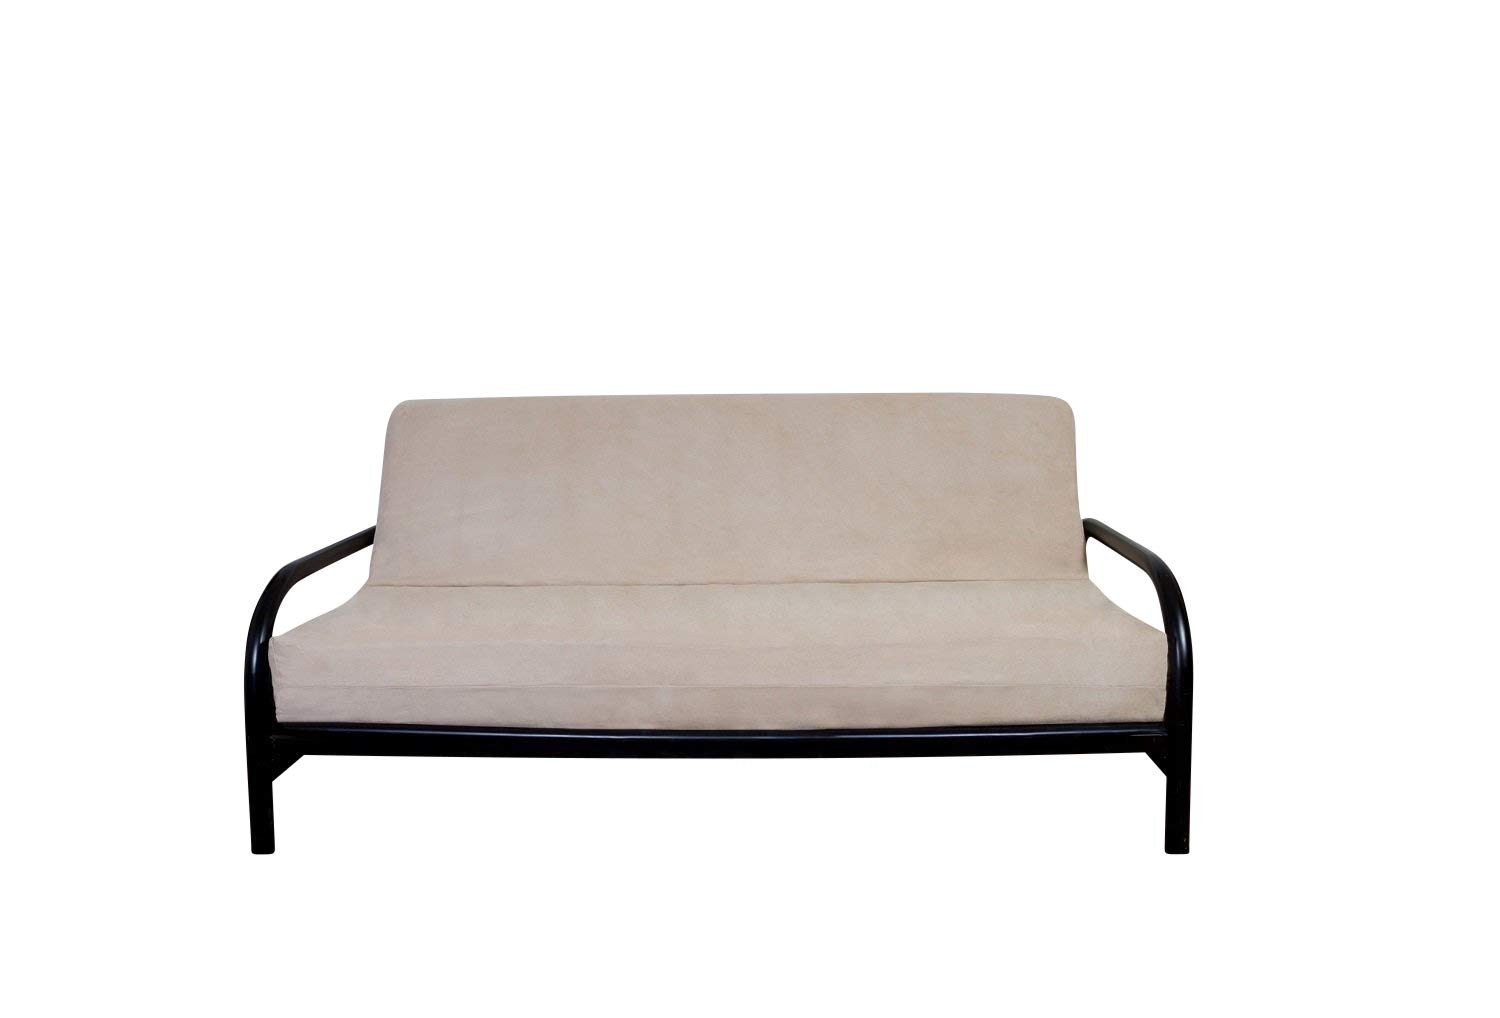 OctoRose BEIGE Full Size 3 Side Zipper Quality Bonded Micro Suede Futon Mattress Cover by OctoRose (Image #1)